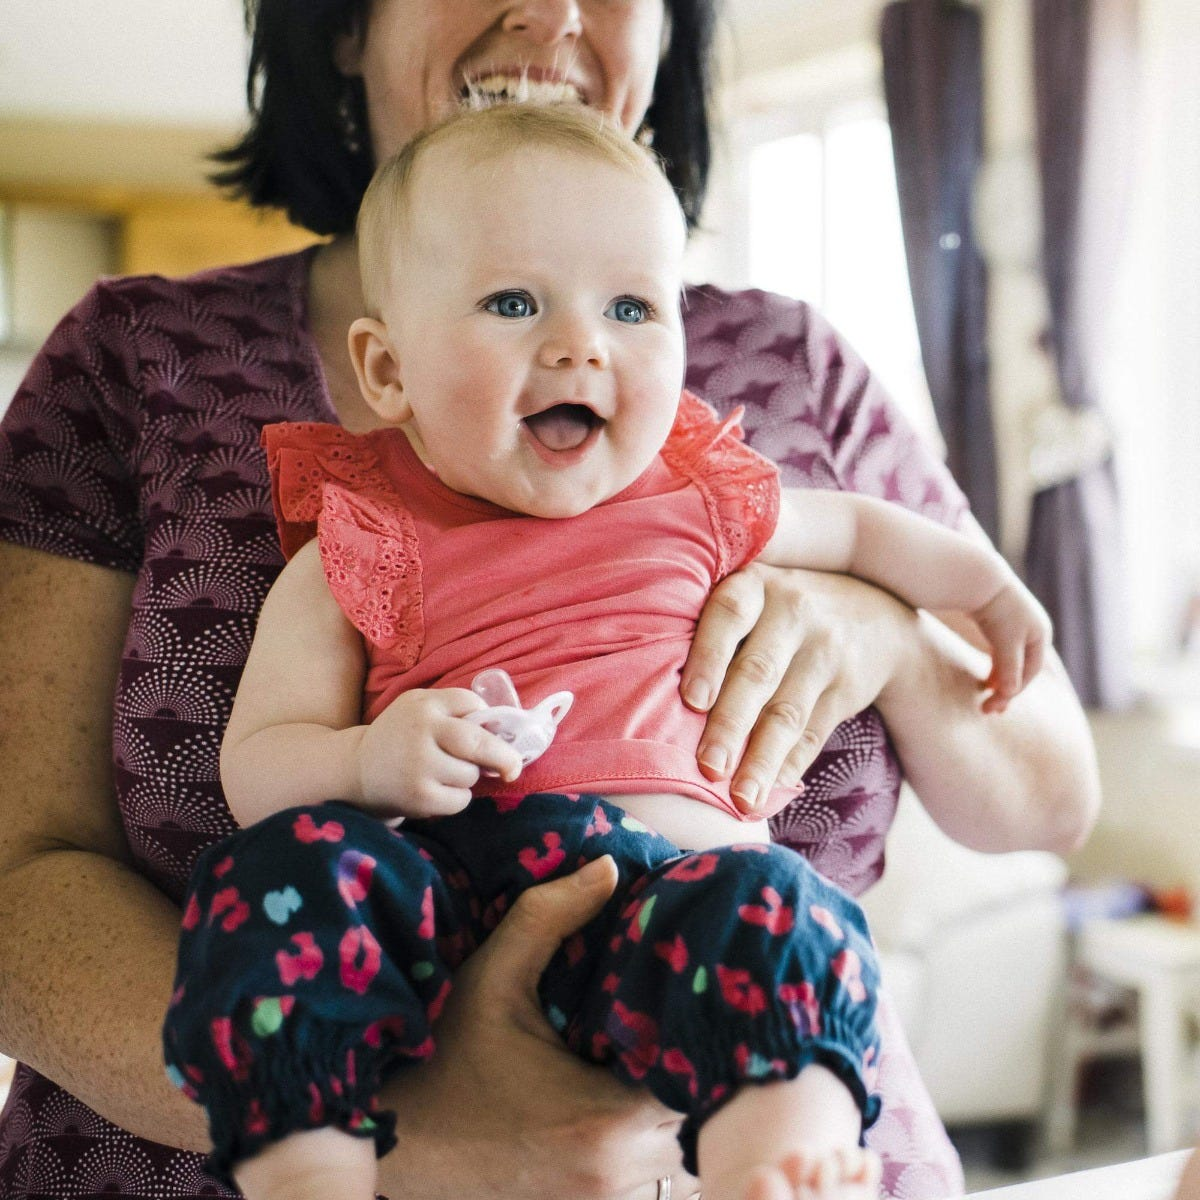 baby-smiling-holding-moda-soother